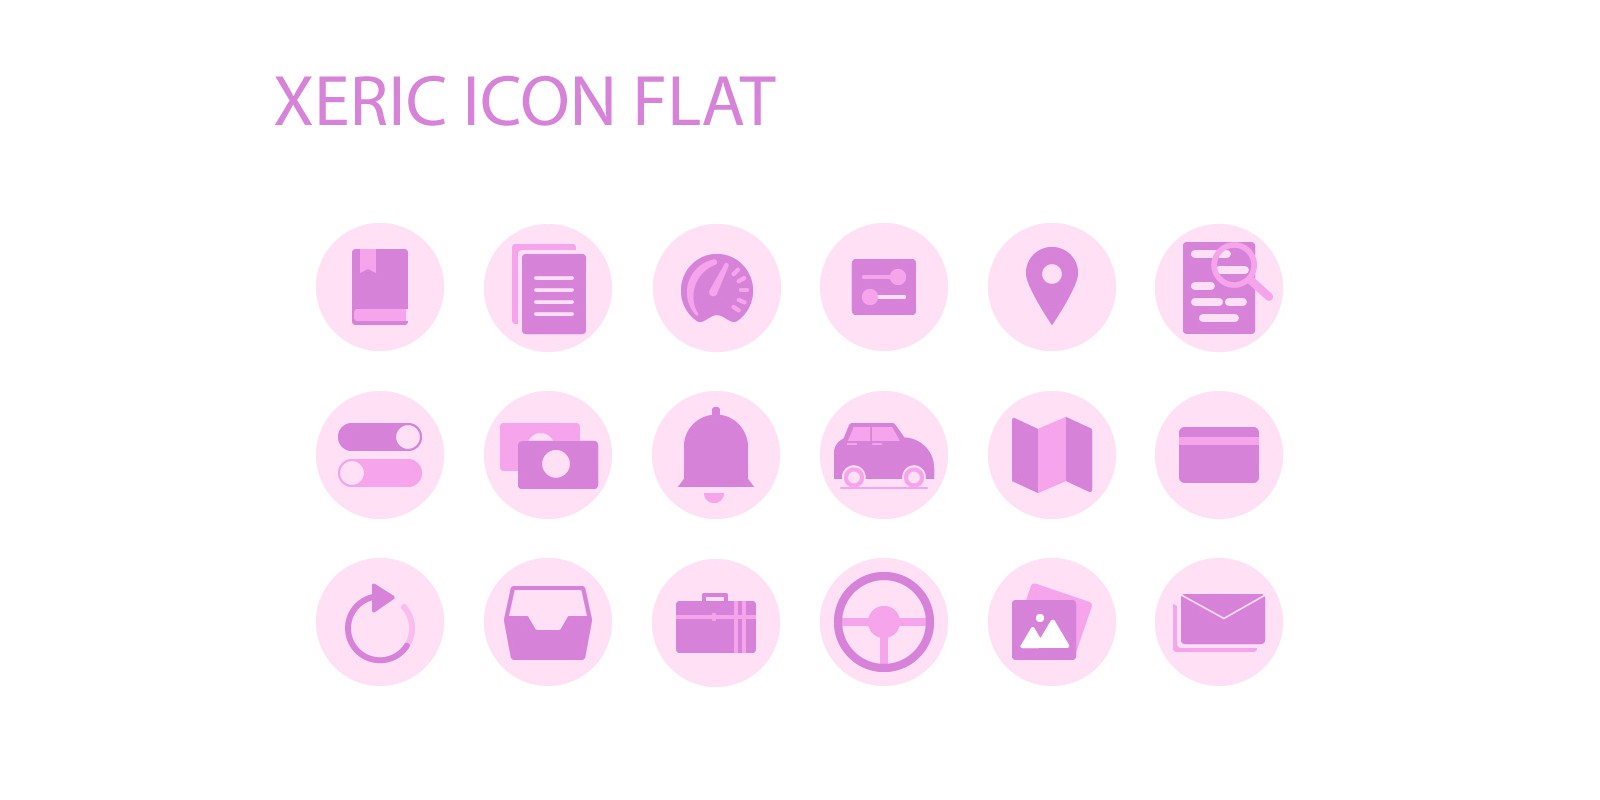 Xeric Flat Icon Pack